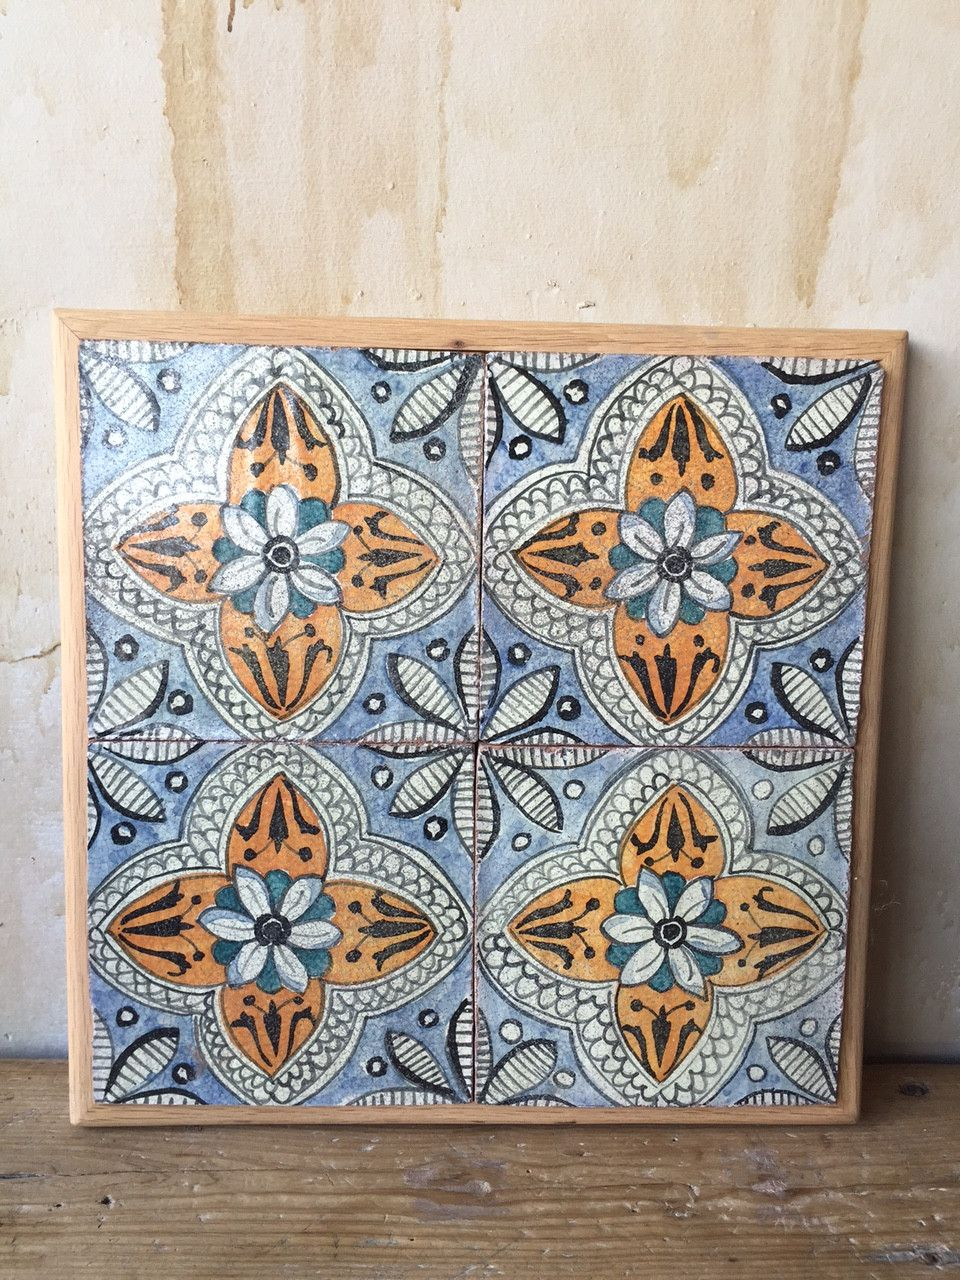 Antique Italian Tiles - 18th Century in 2019 | Tiles of all Kinds